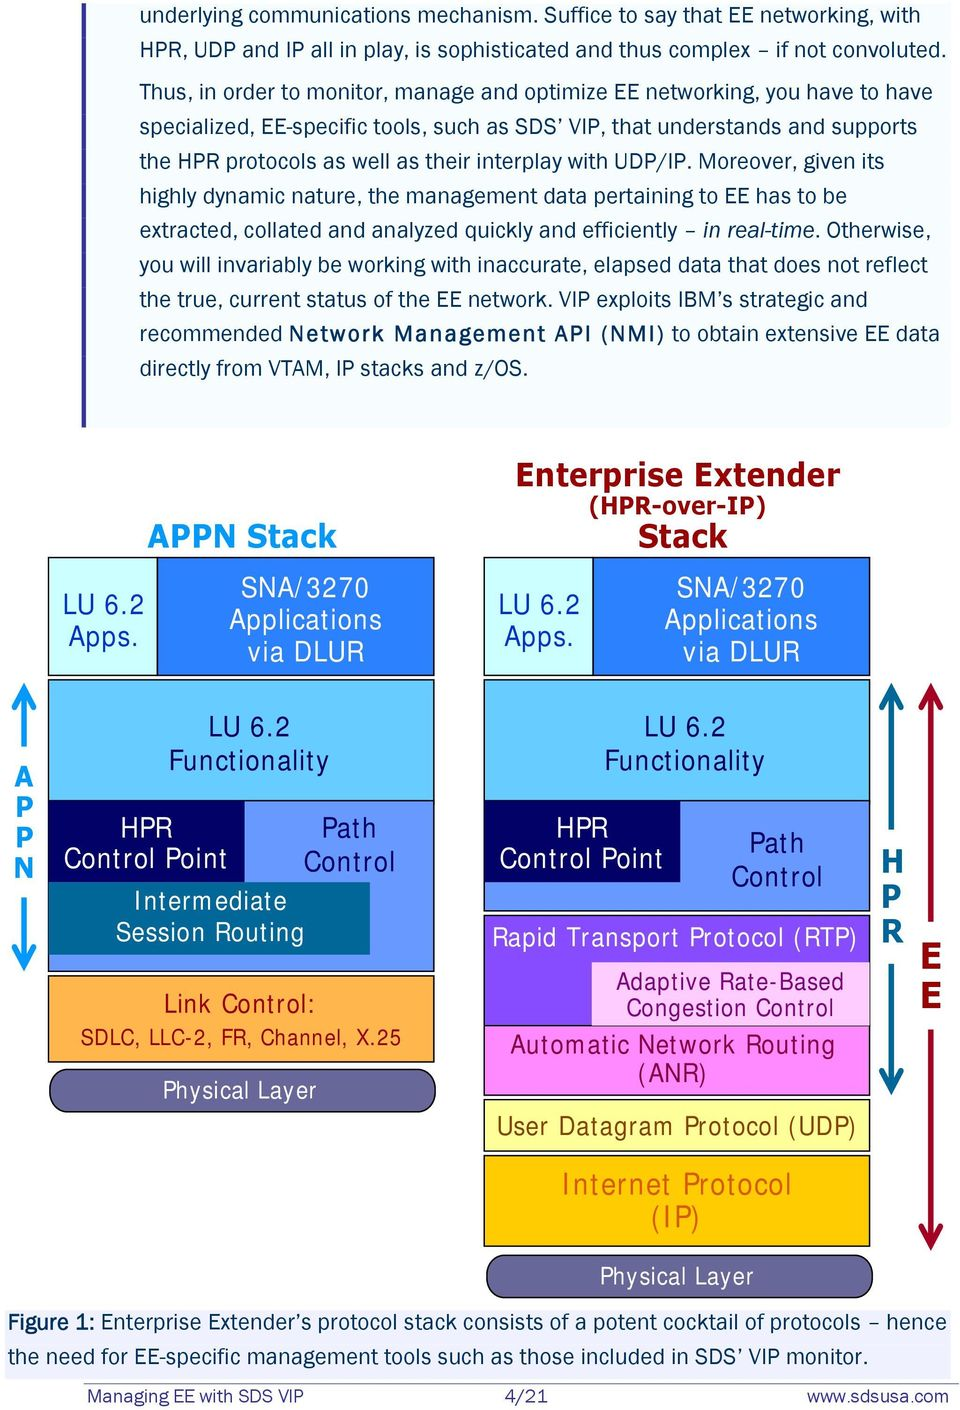 interplay with UDP/IP. Moreover, given its highly dynamic nature, the management data pertaining to EE has to be extracted, collated and analyzed quickly and efficiently in real-time.